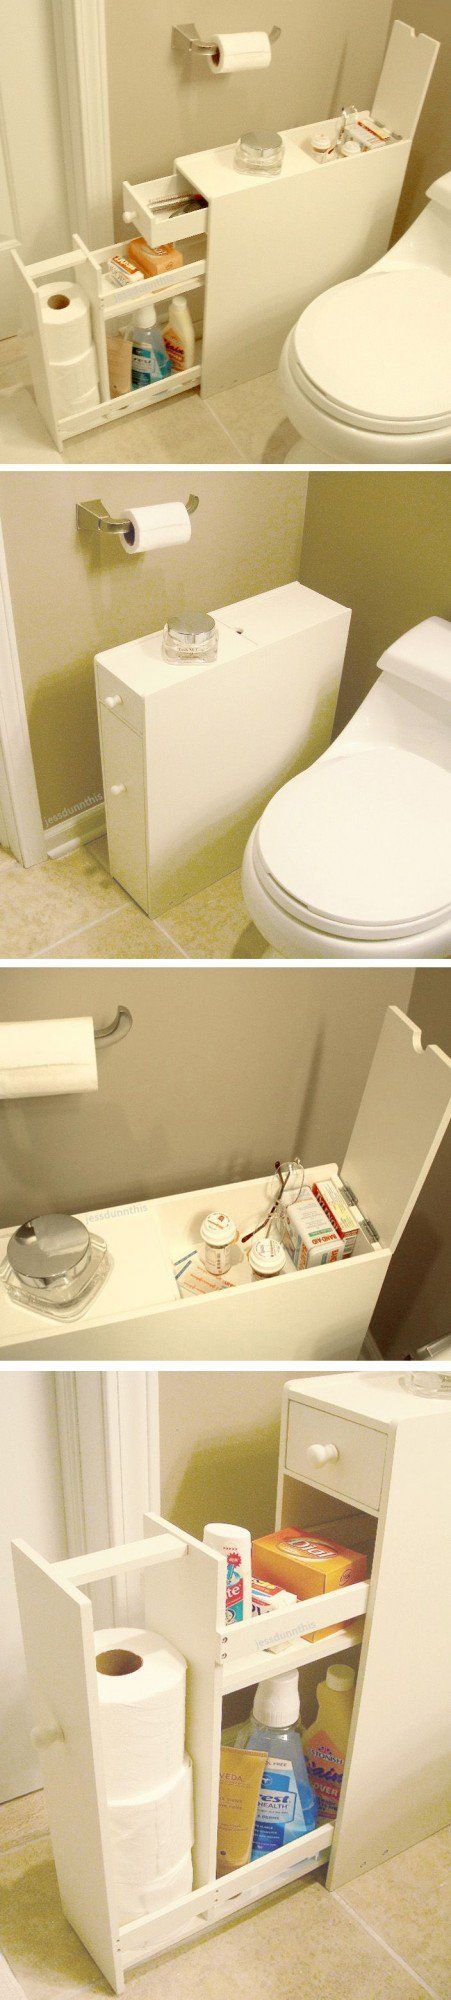 Best Bathroom Storage Diy Ideas On Pinterest Diy Bathroom - Small bathroom cabinet with drawers for small bathroom ideas